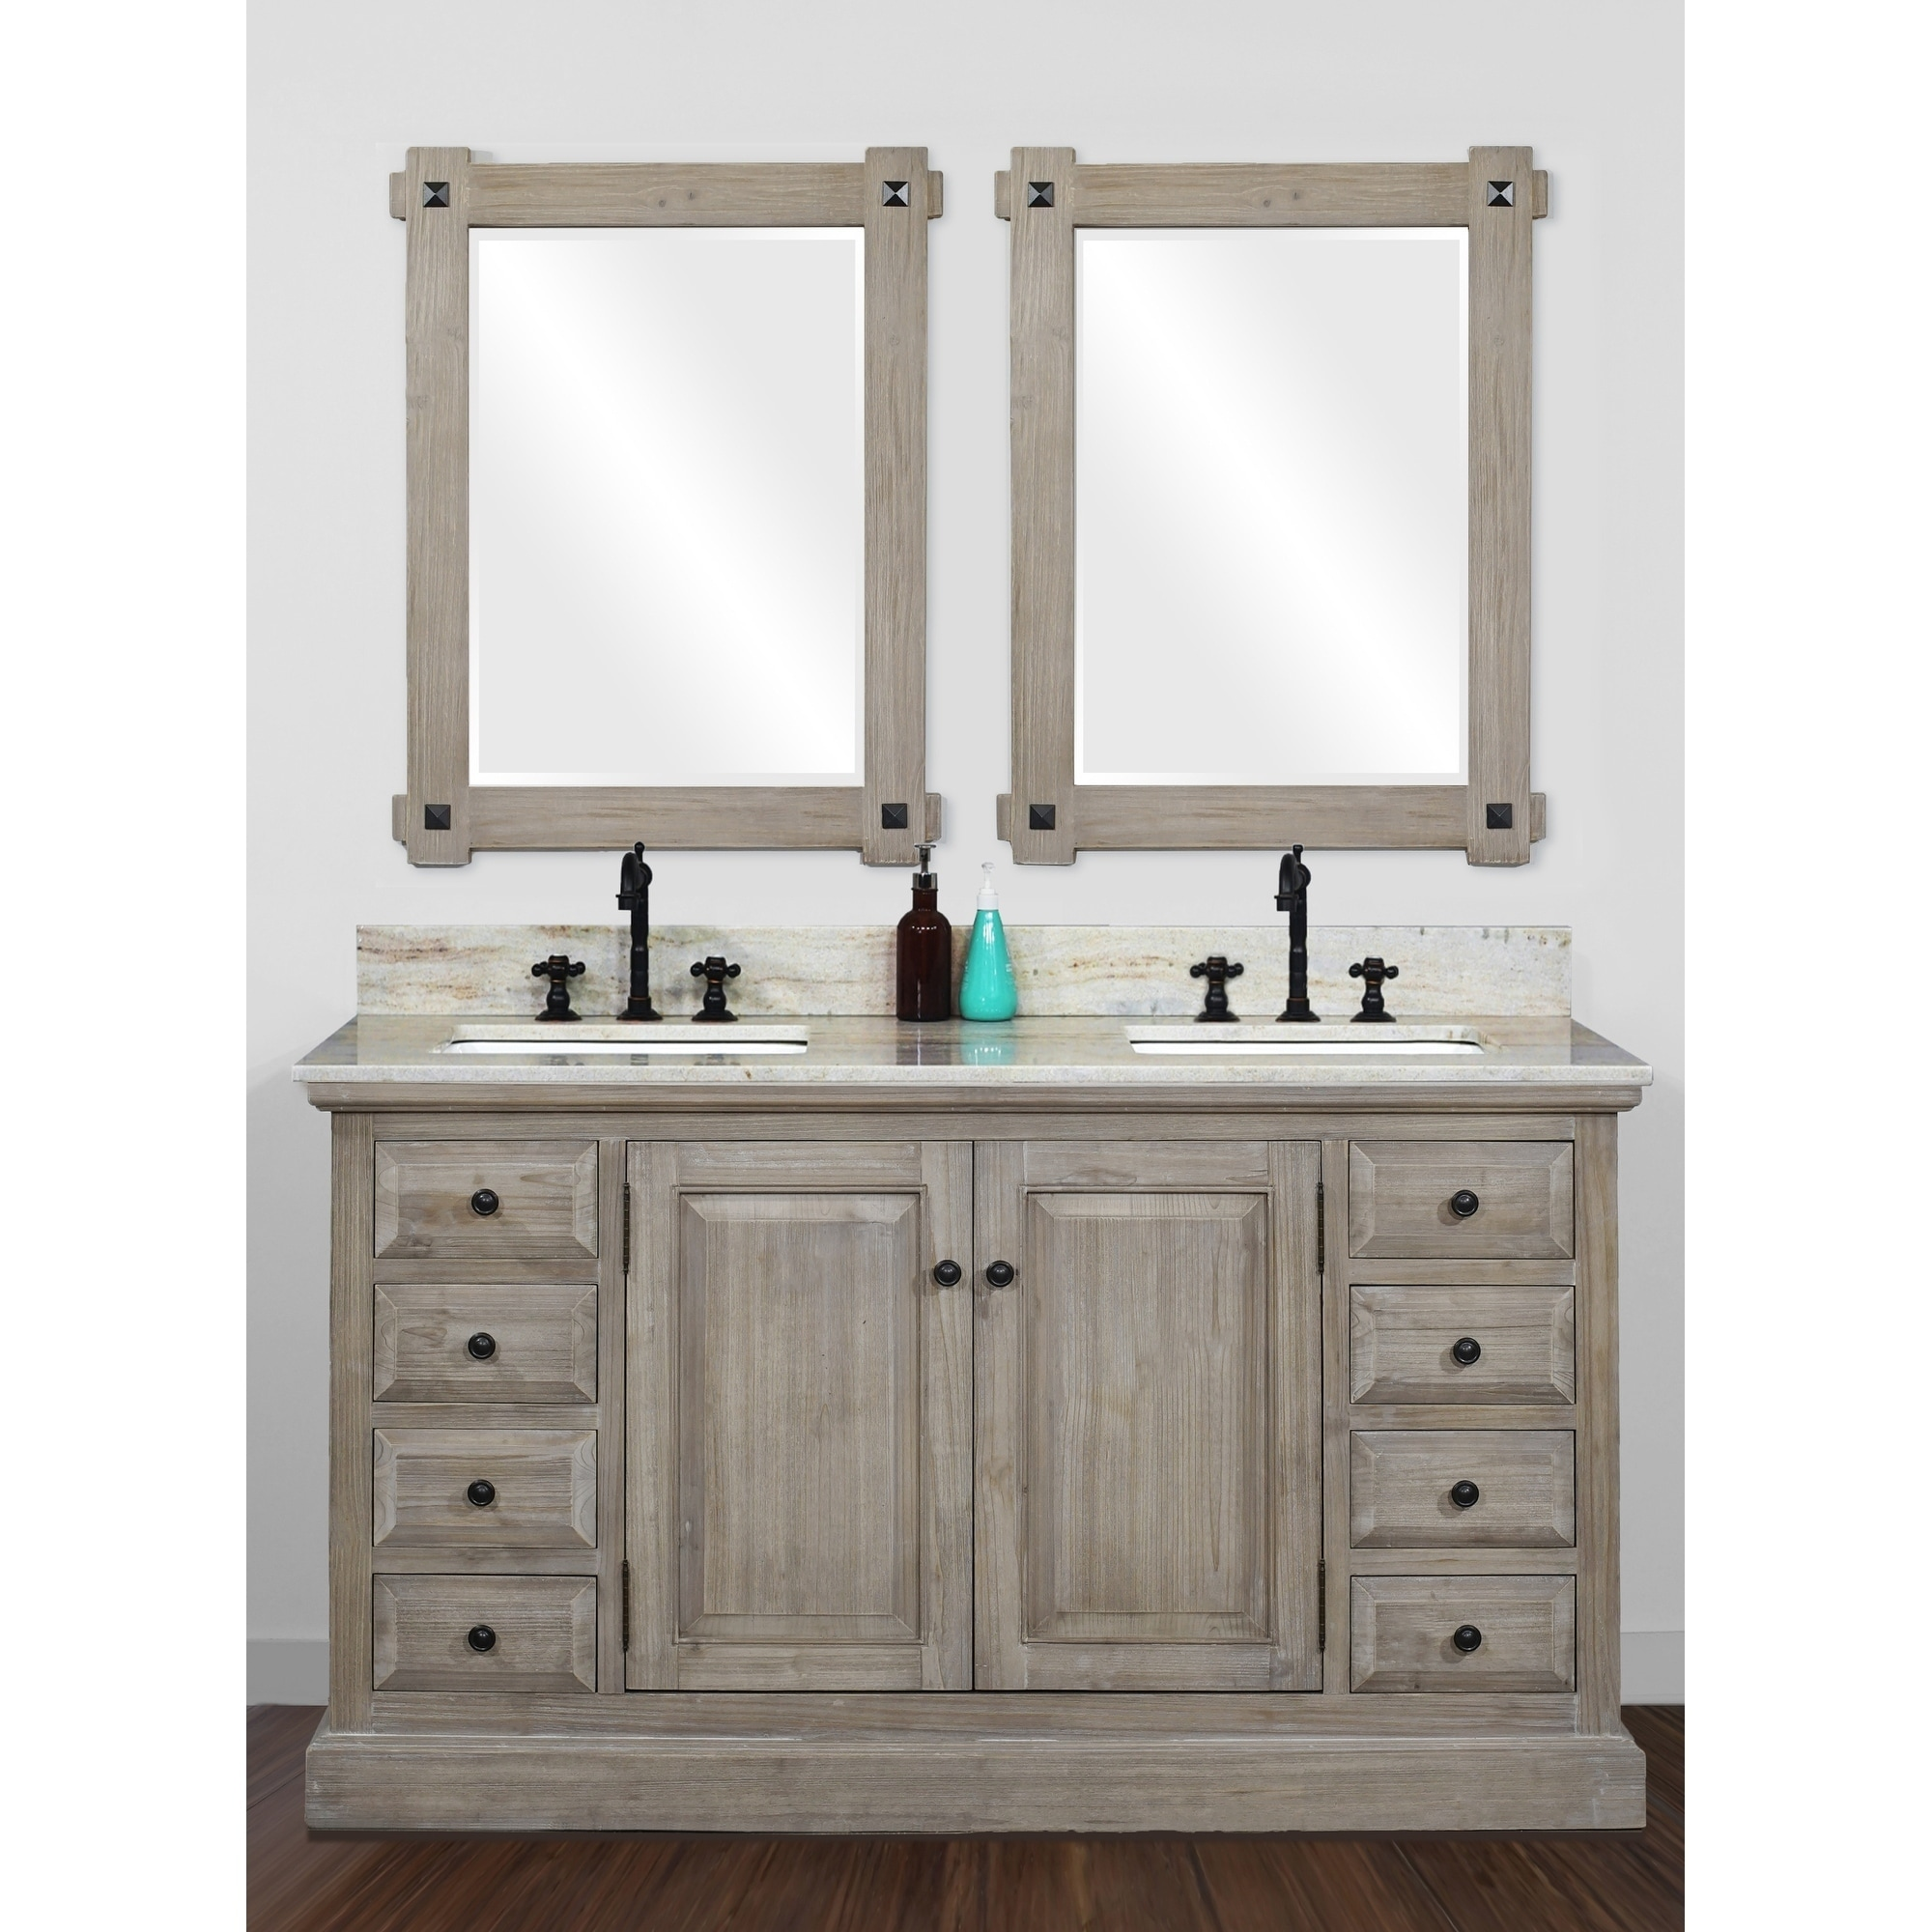 Shop Rustic Style 60 Inch Double Sink Bathroom Vanity With Coastal Sand Marble Top No Faucet Overstock 30581124